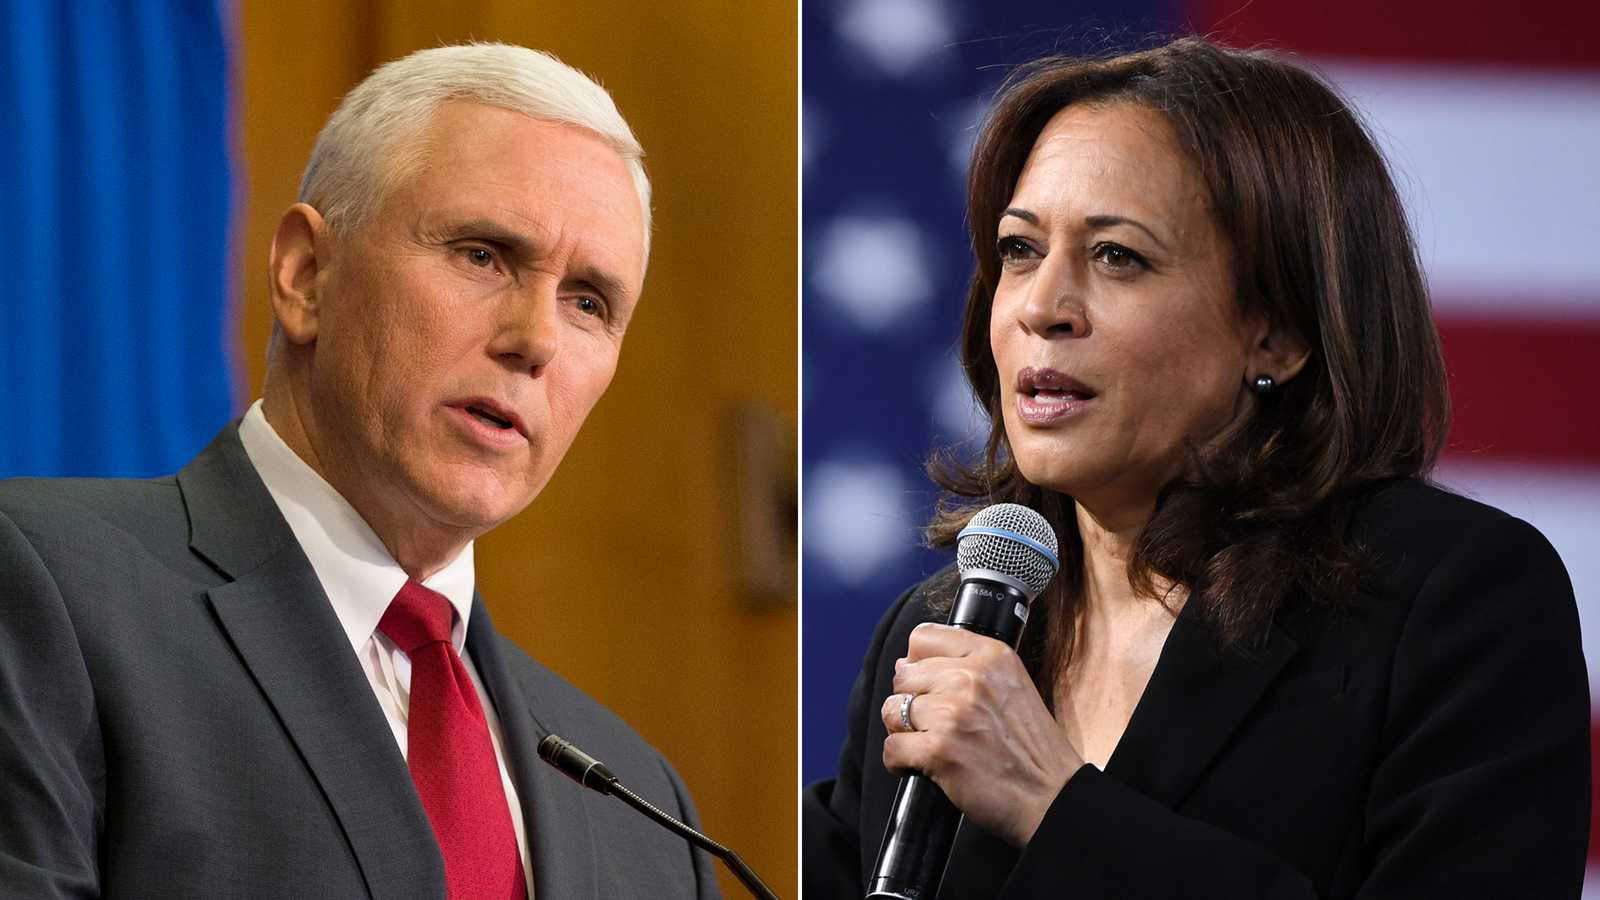 Kamala Harris and Mike Pence scheduled to face off at October debate